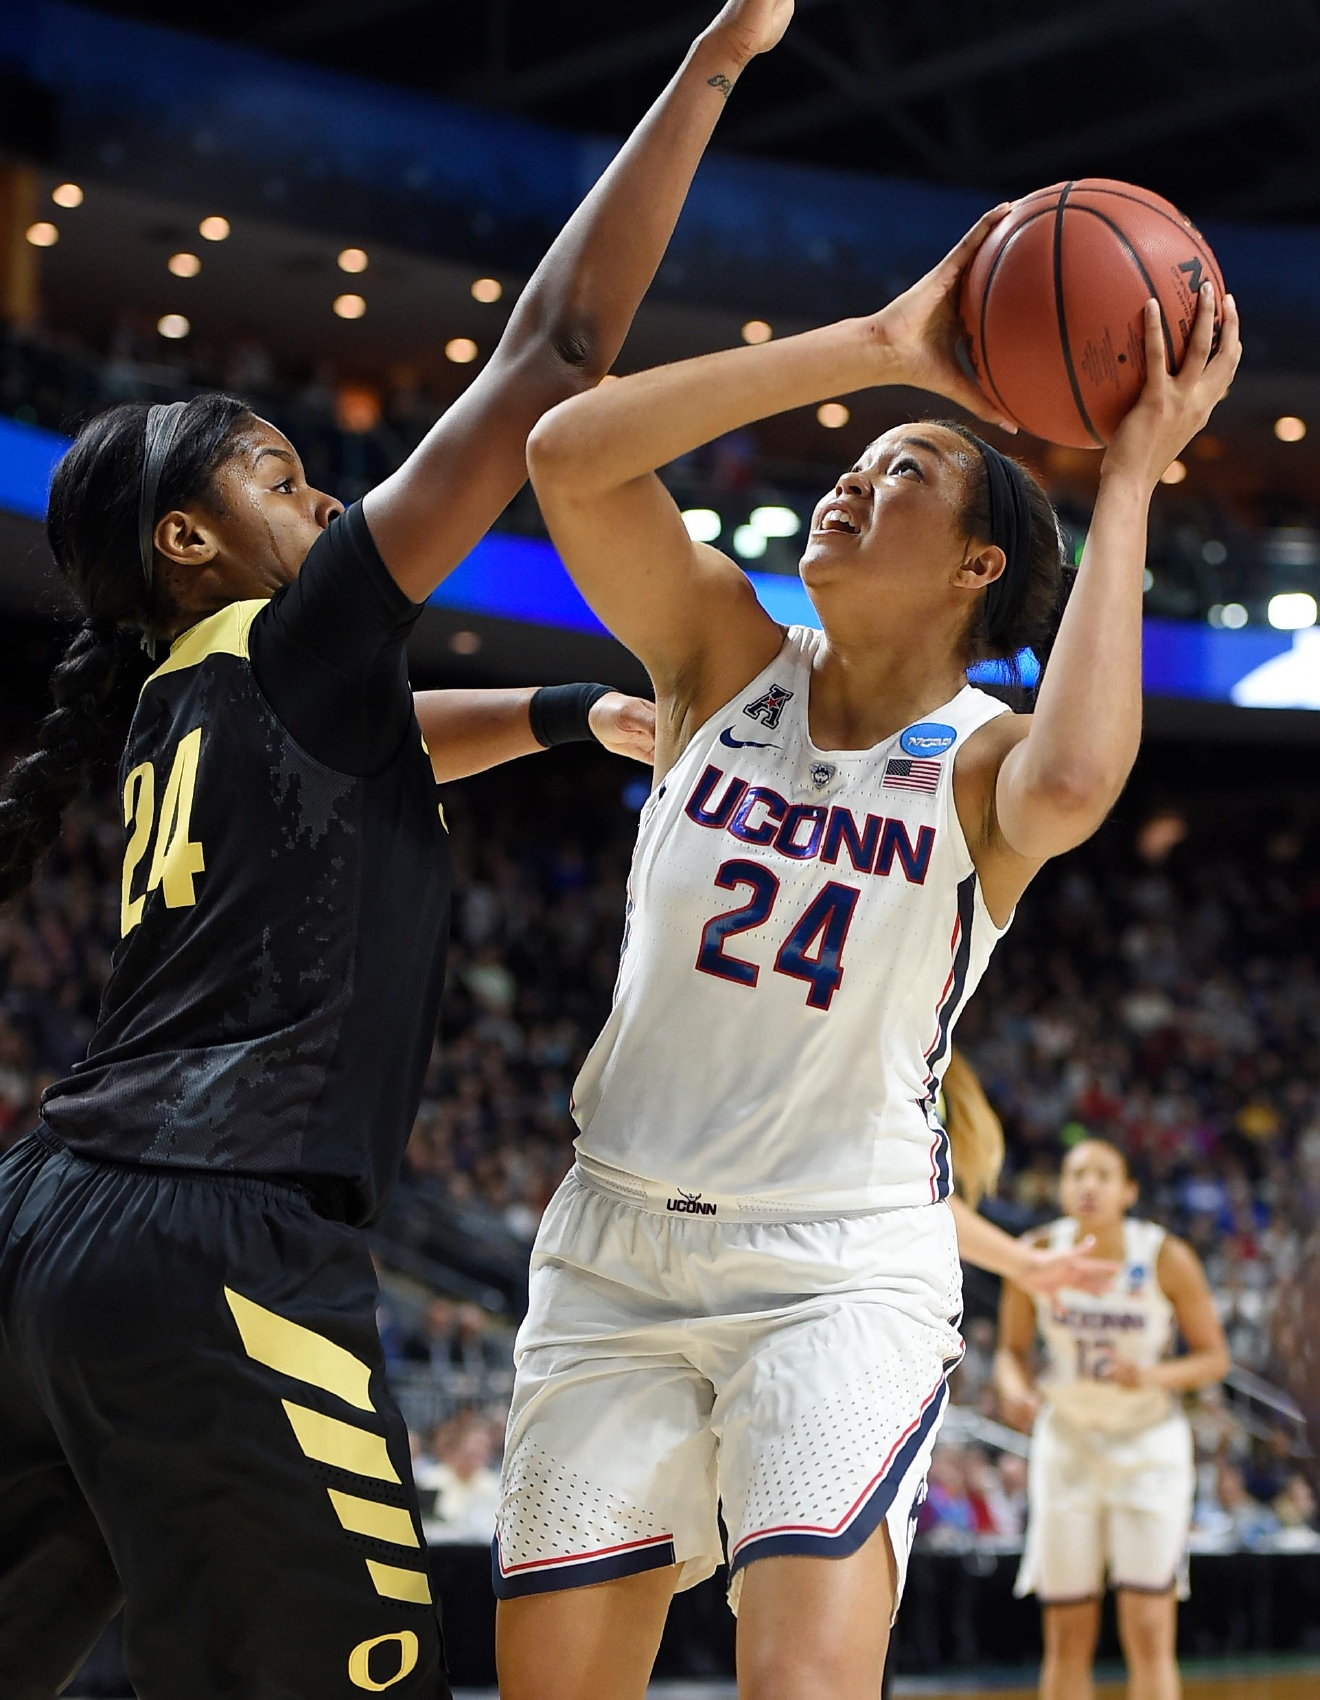 Connecticut's Napheesa Collier, right, shoots as Oregon's Ruthy Hebard, left, defends, during the first half of a regional final game in the NCAA women's college basketball tournament, Monday, March 27, 2017, in Bridgeport, Conn. (AP Photo/Jessica Hill)